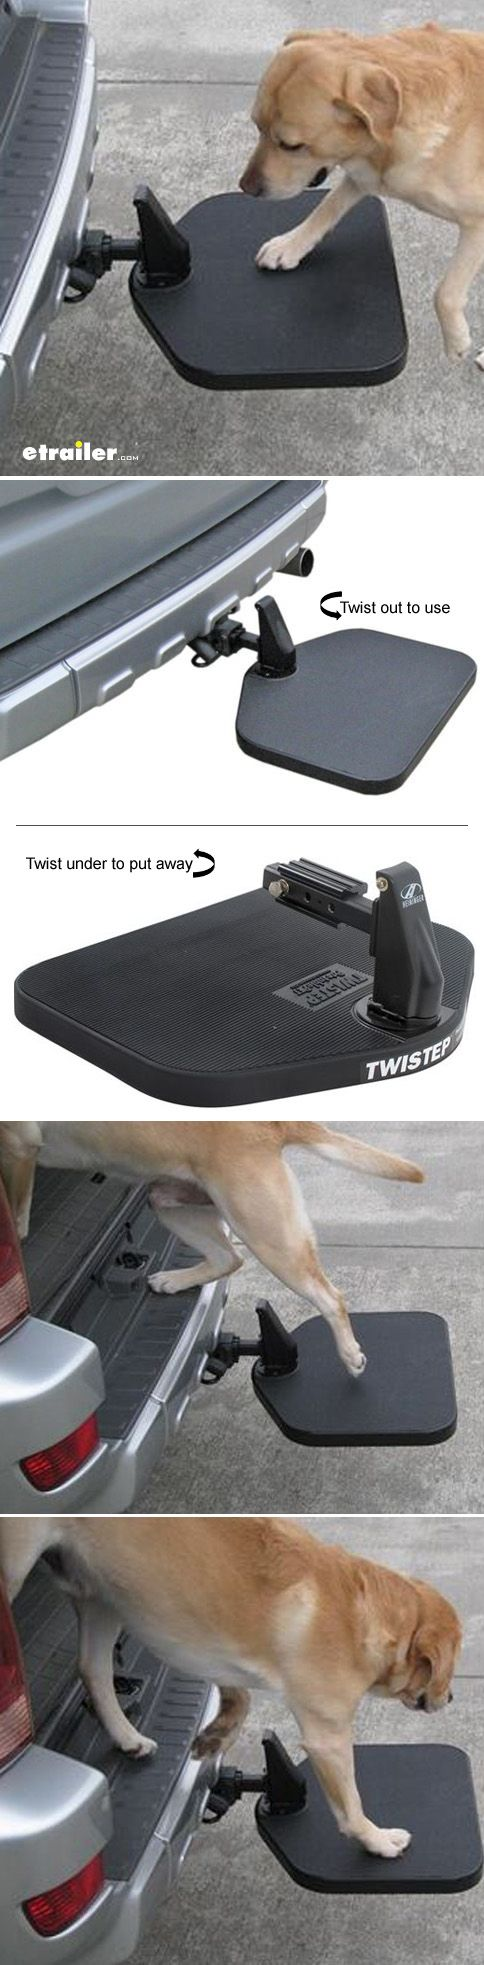 Help your small or arthritic dog get into and out of the back of your vehicle easily by providing him with a large, sturdy step. This unique platform slides into your trailer hitch receiver and conveniently rotates beneath the car when not in use.